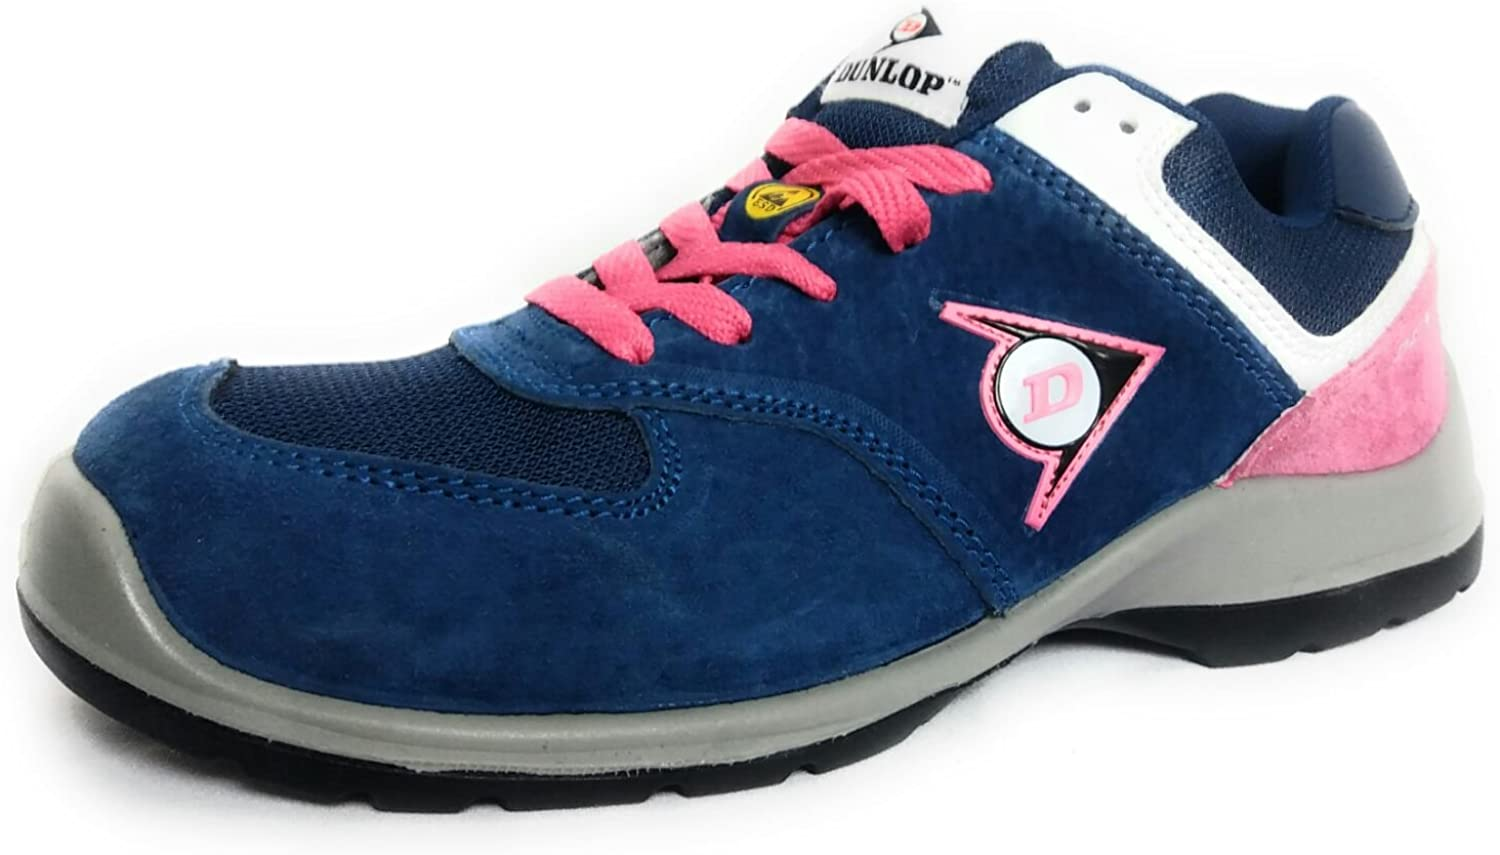 Dunlop Lady shoes bluee Pink S3, Size 37